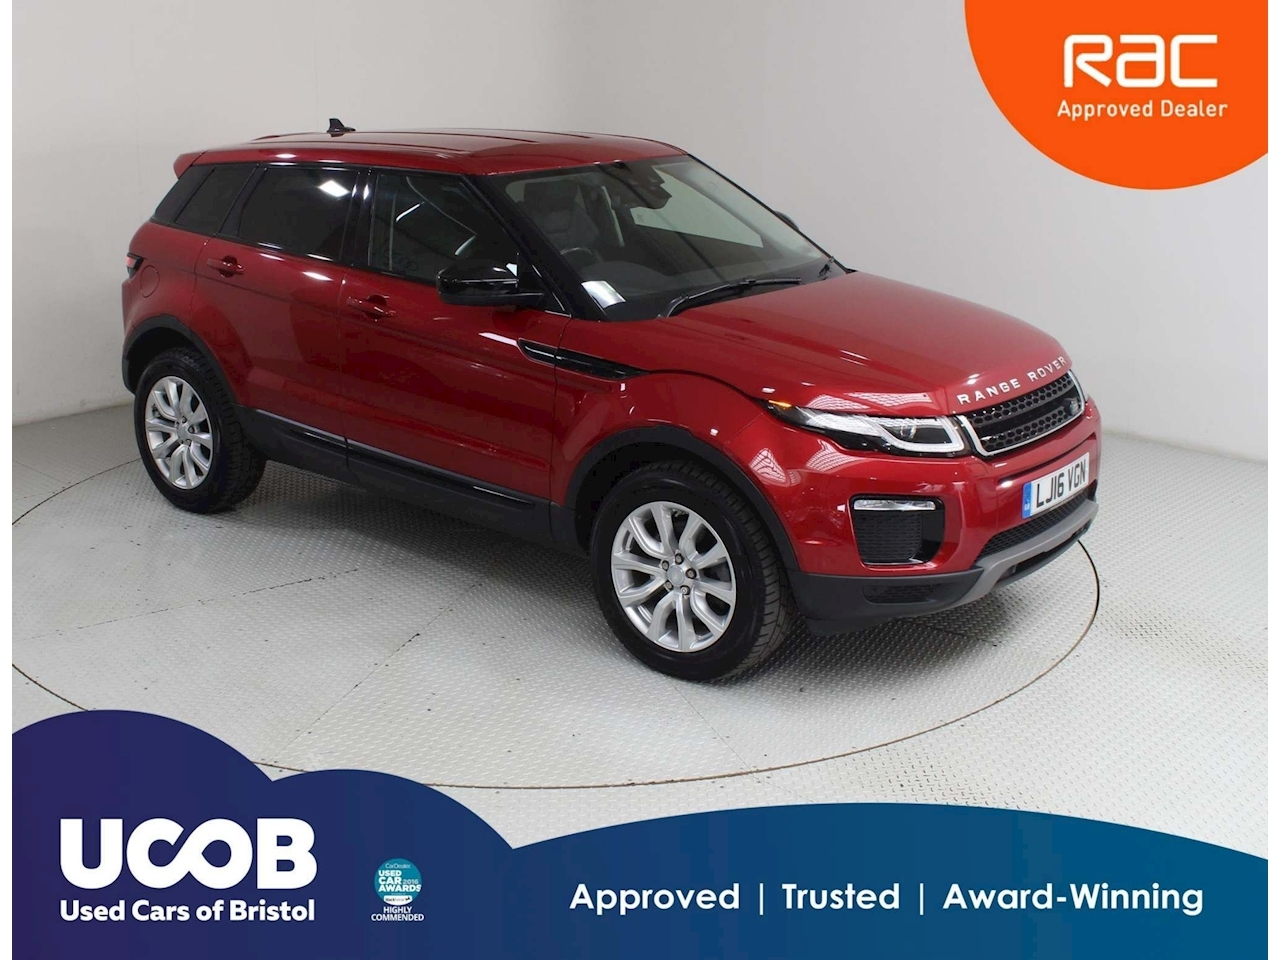 Land Rover Range Rover Evoque Td4 Se Tech Estate 2.0 Manual Diesel